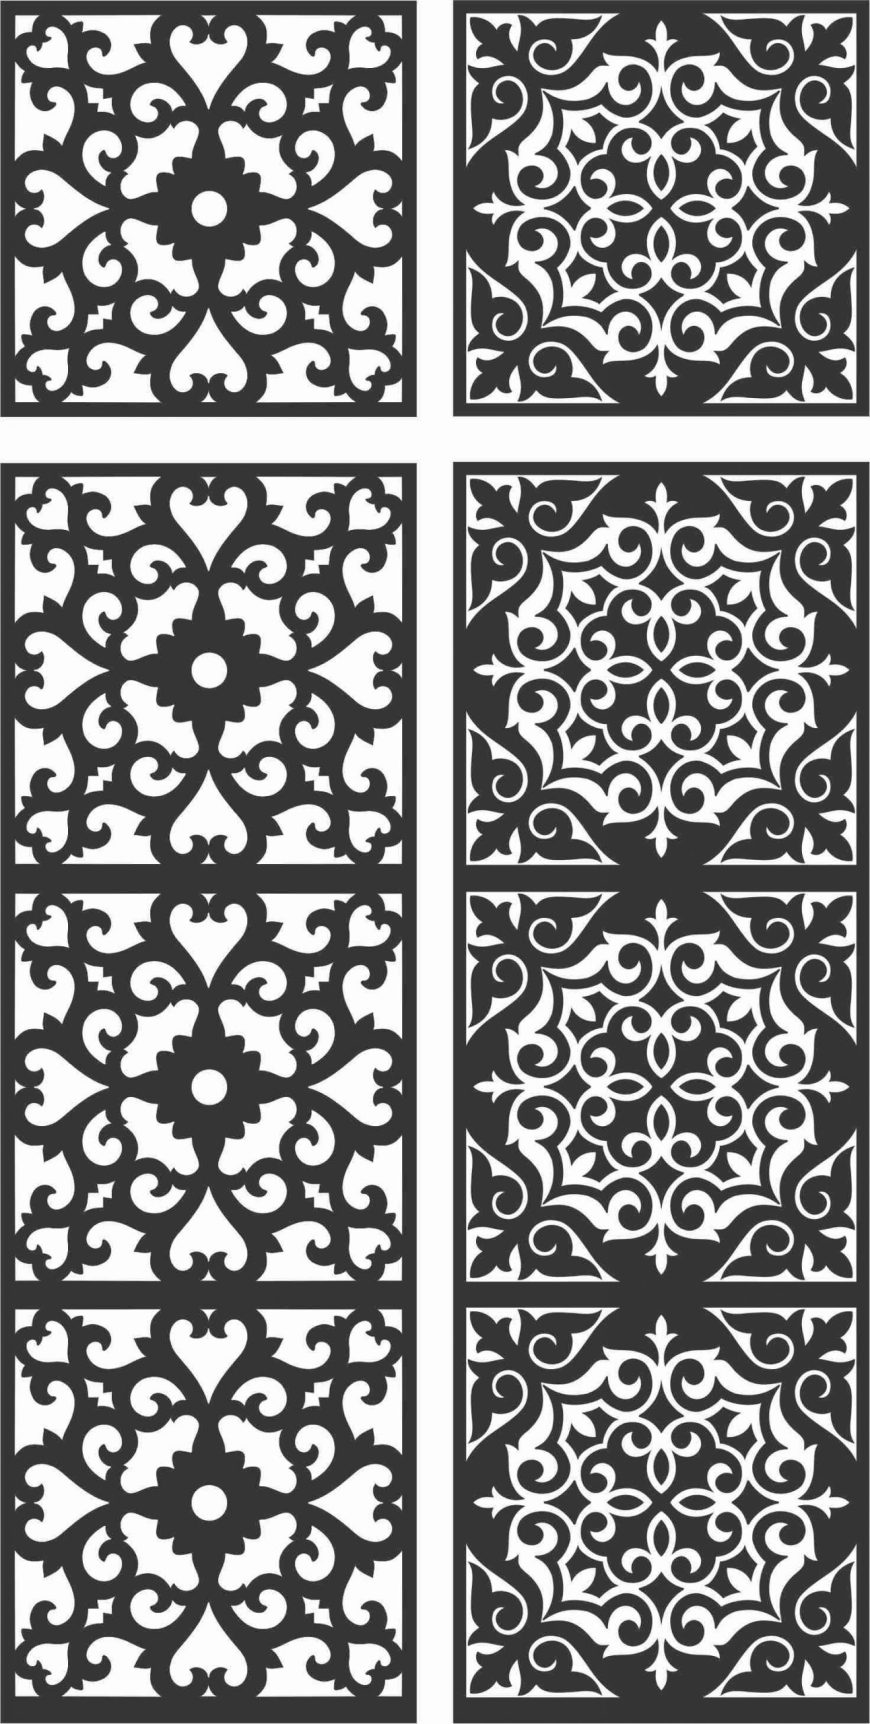 Floral Screen Patterns Design 122 Free DXF File